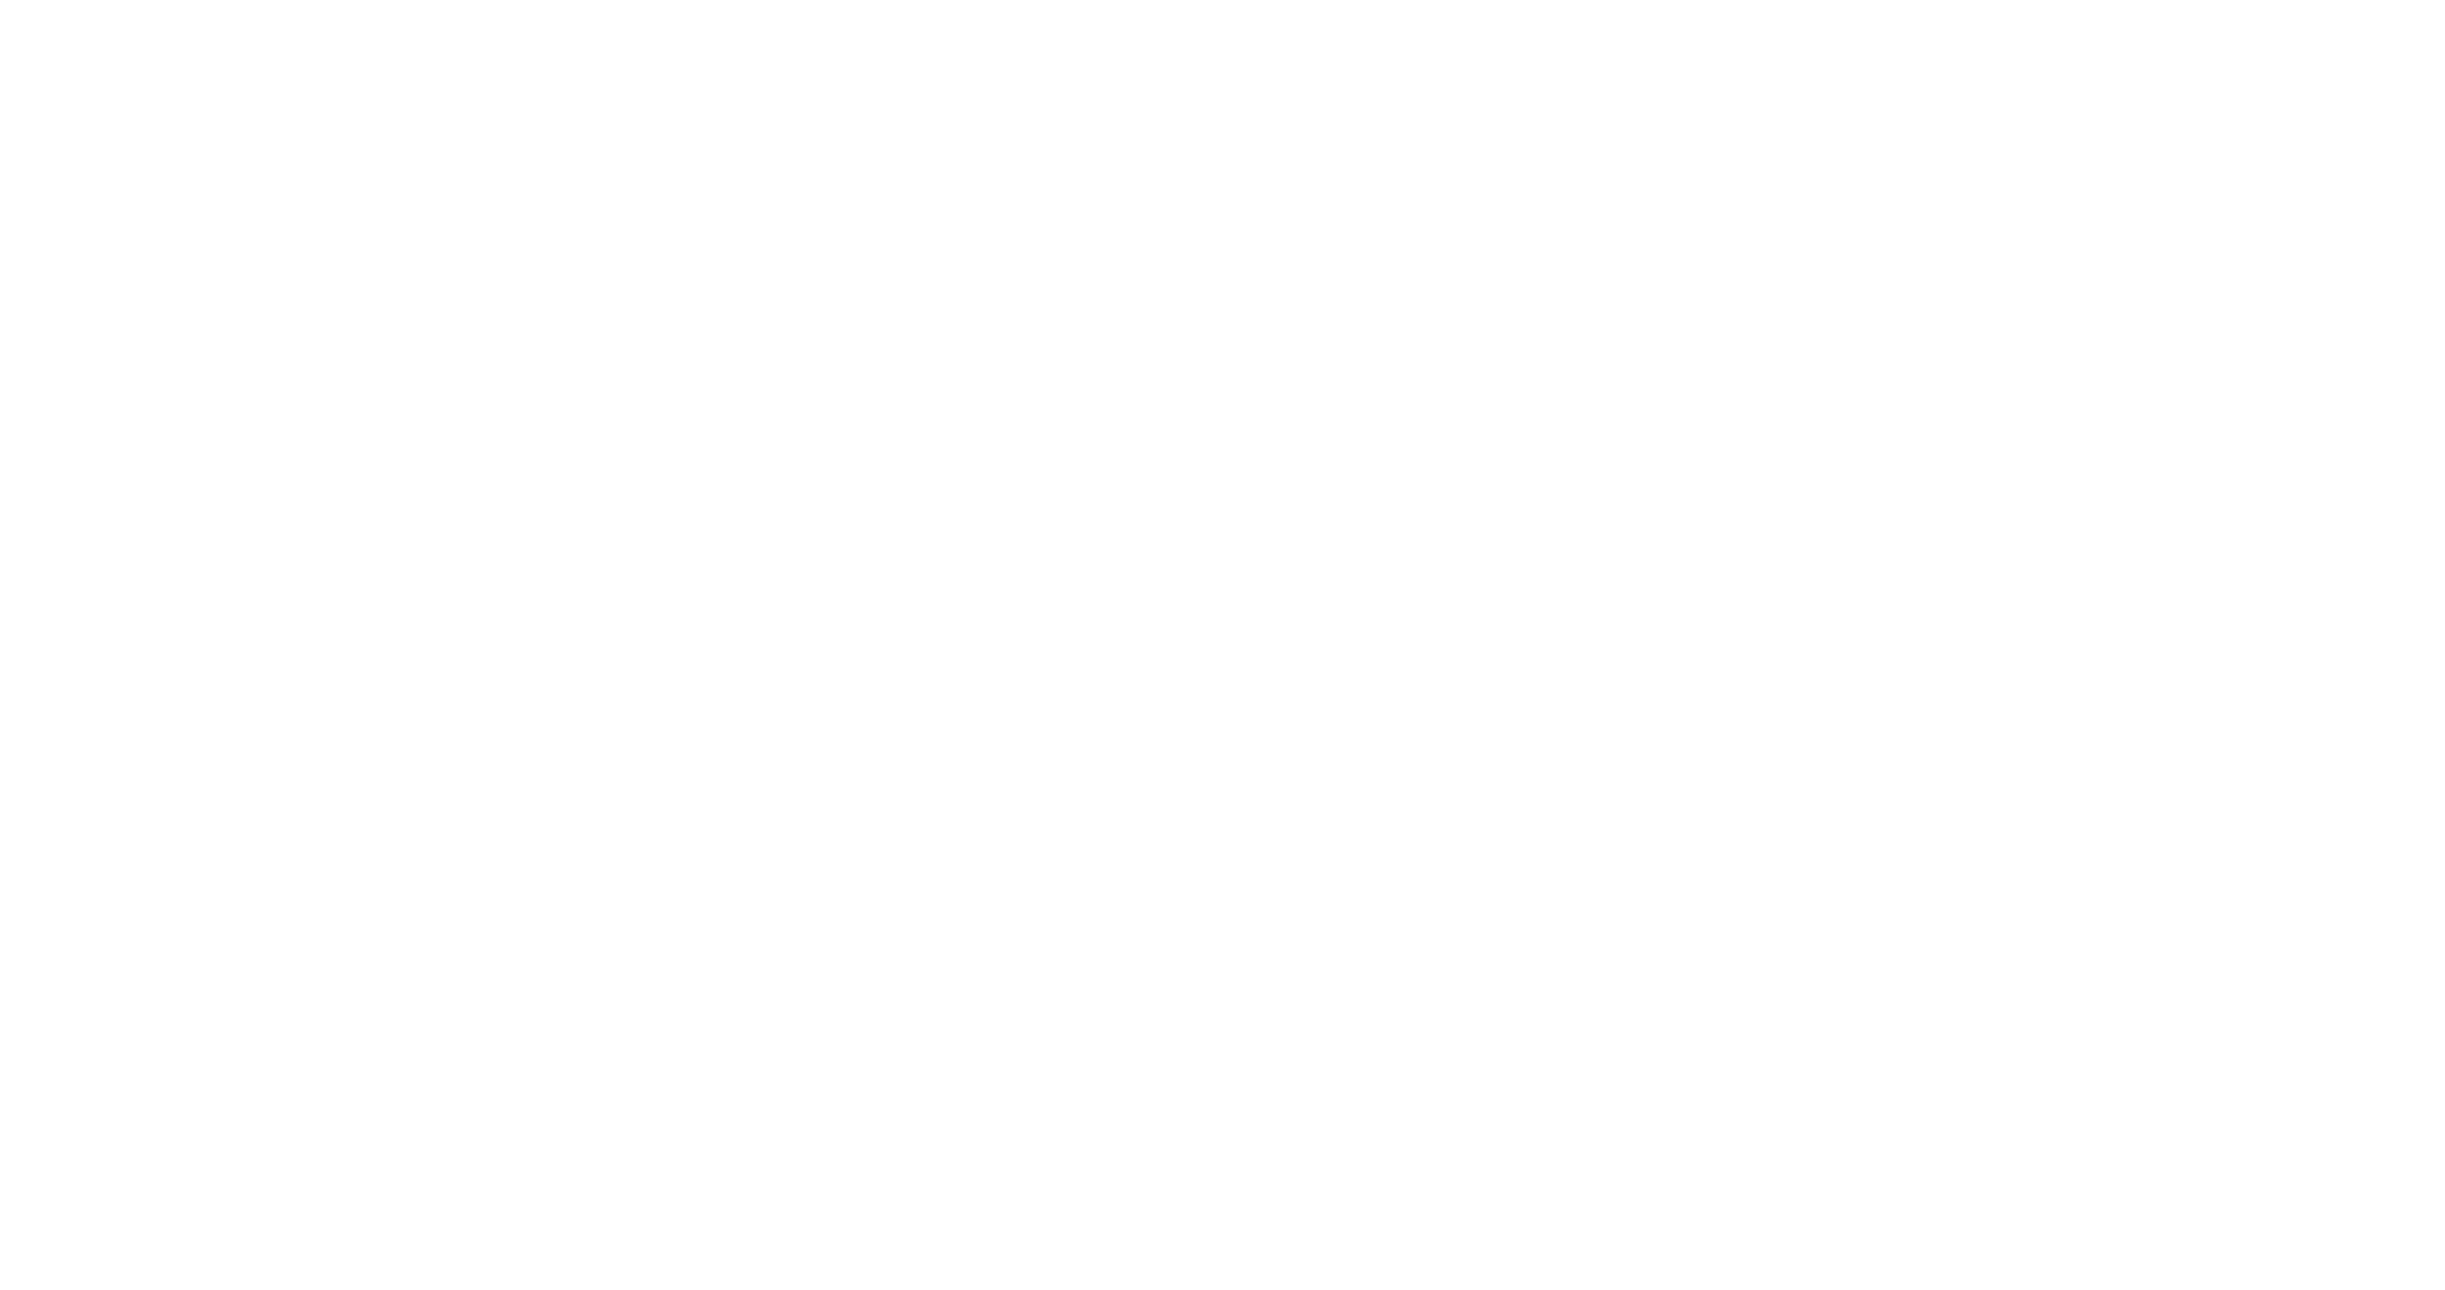 nutrition and wellness caption to advertise assertive athletics and fitness concern for health